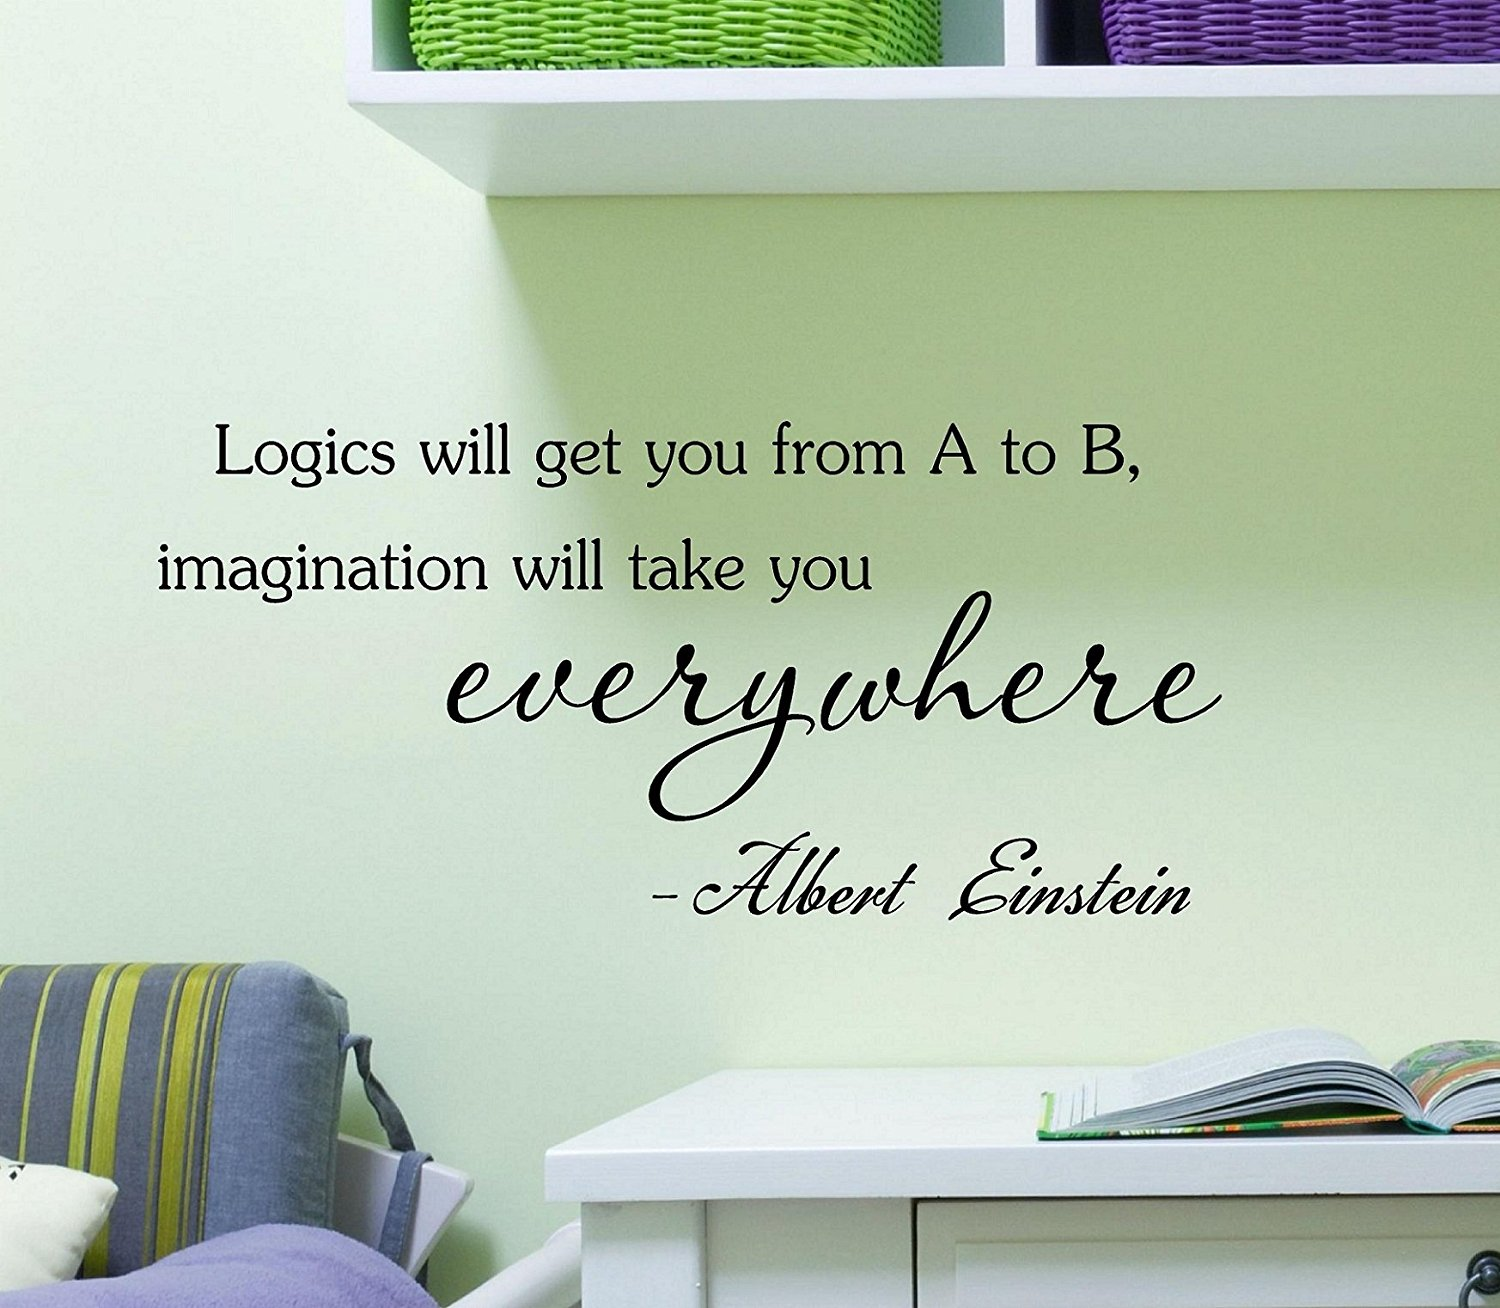 Logics will get you from A to B, imagination will take you every